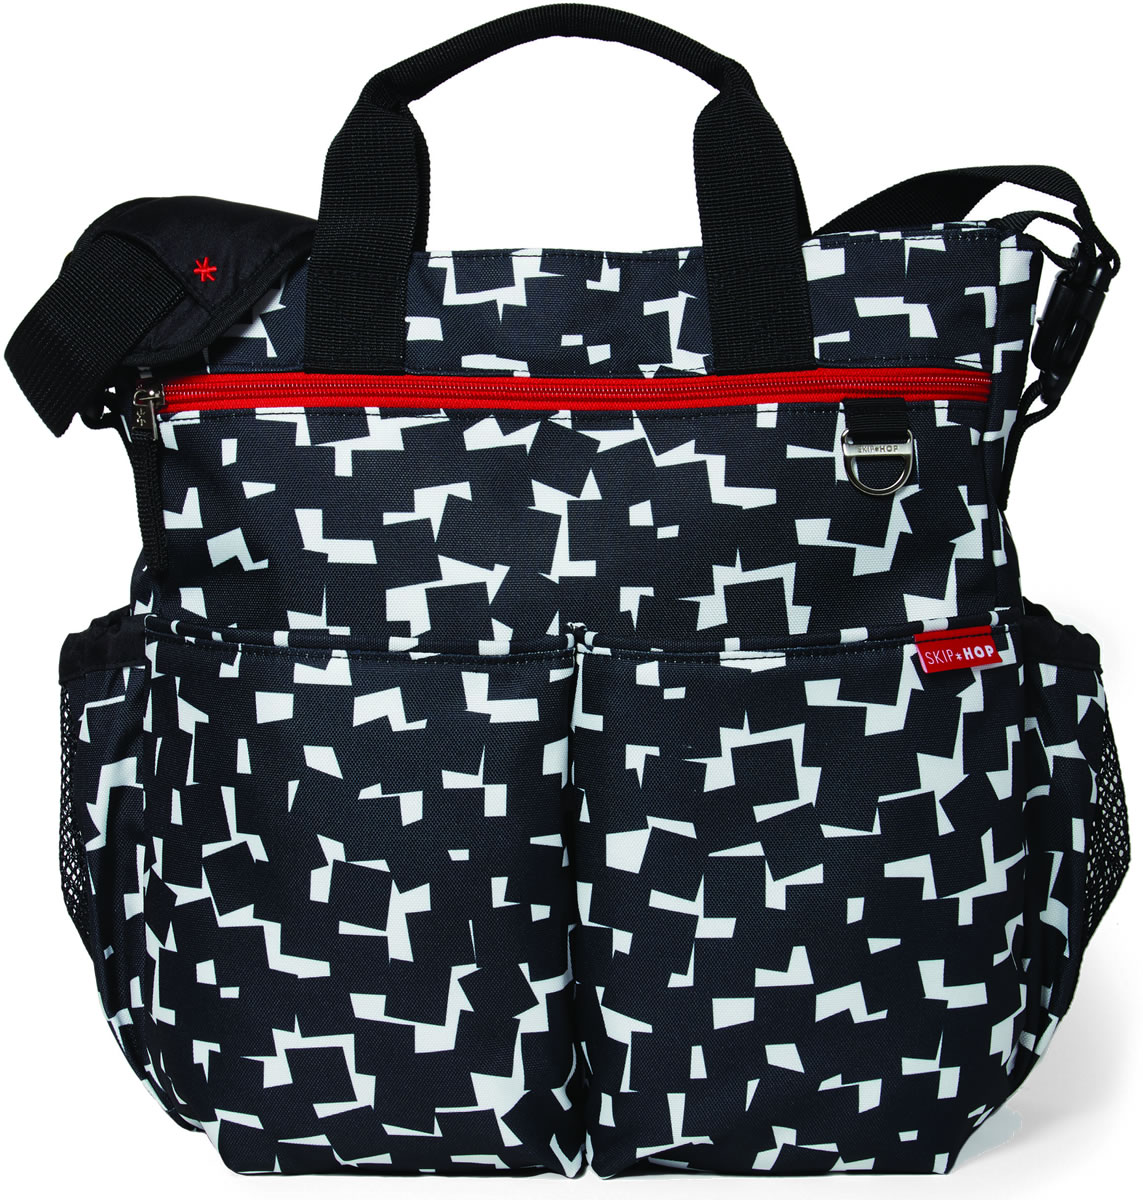 a508d4555f1d3 Skip Hop Duo Signature Diaper Bag - Cubes